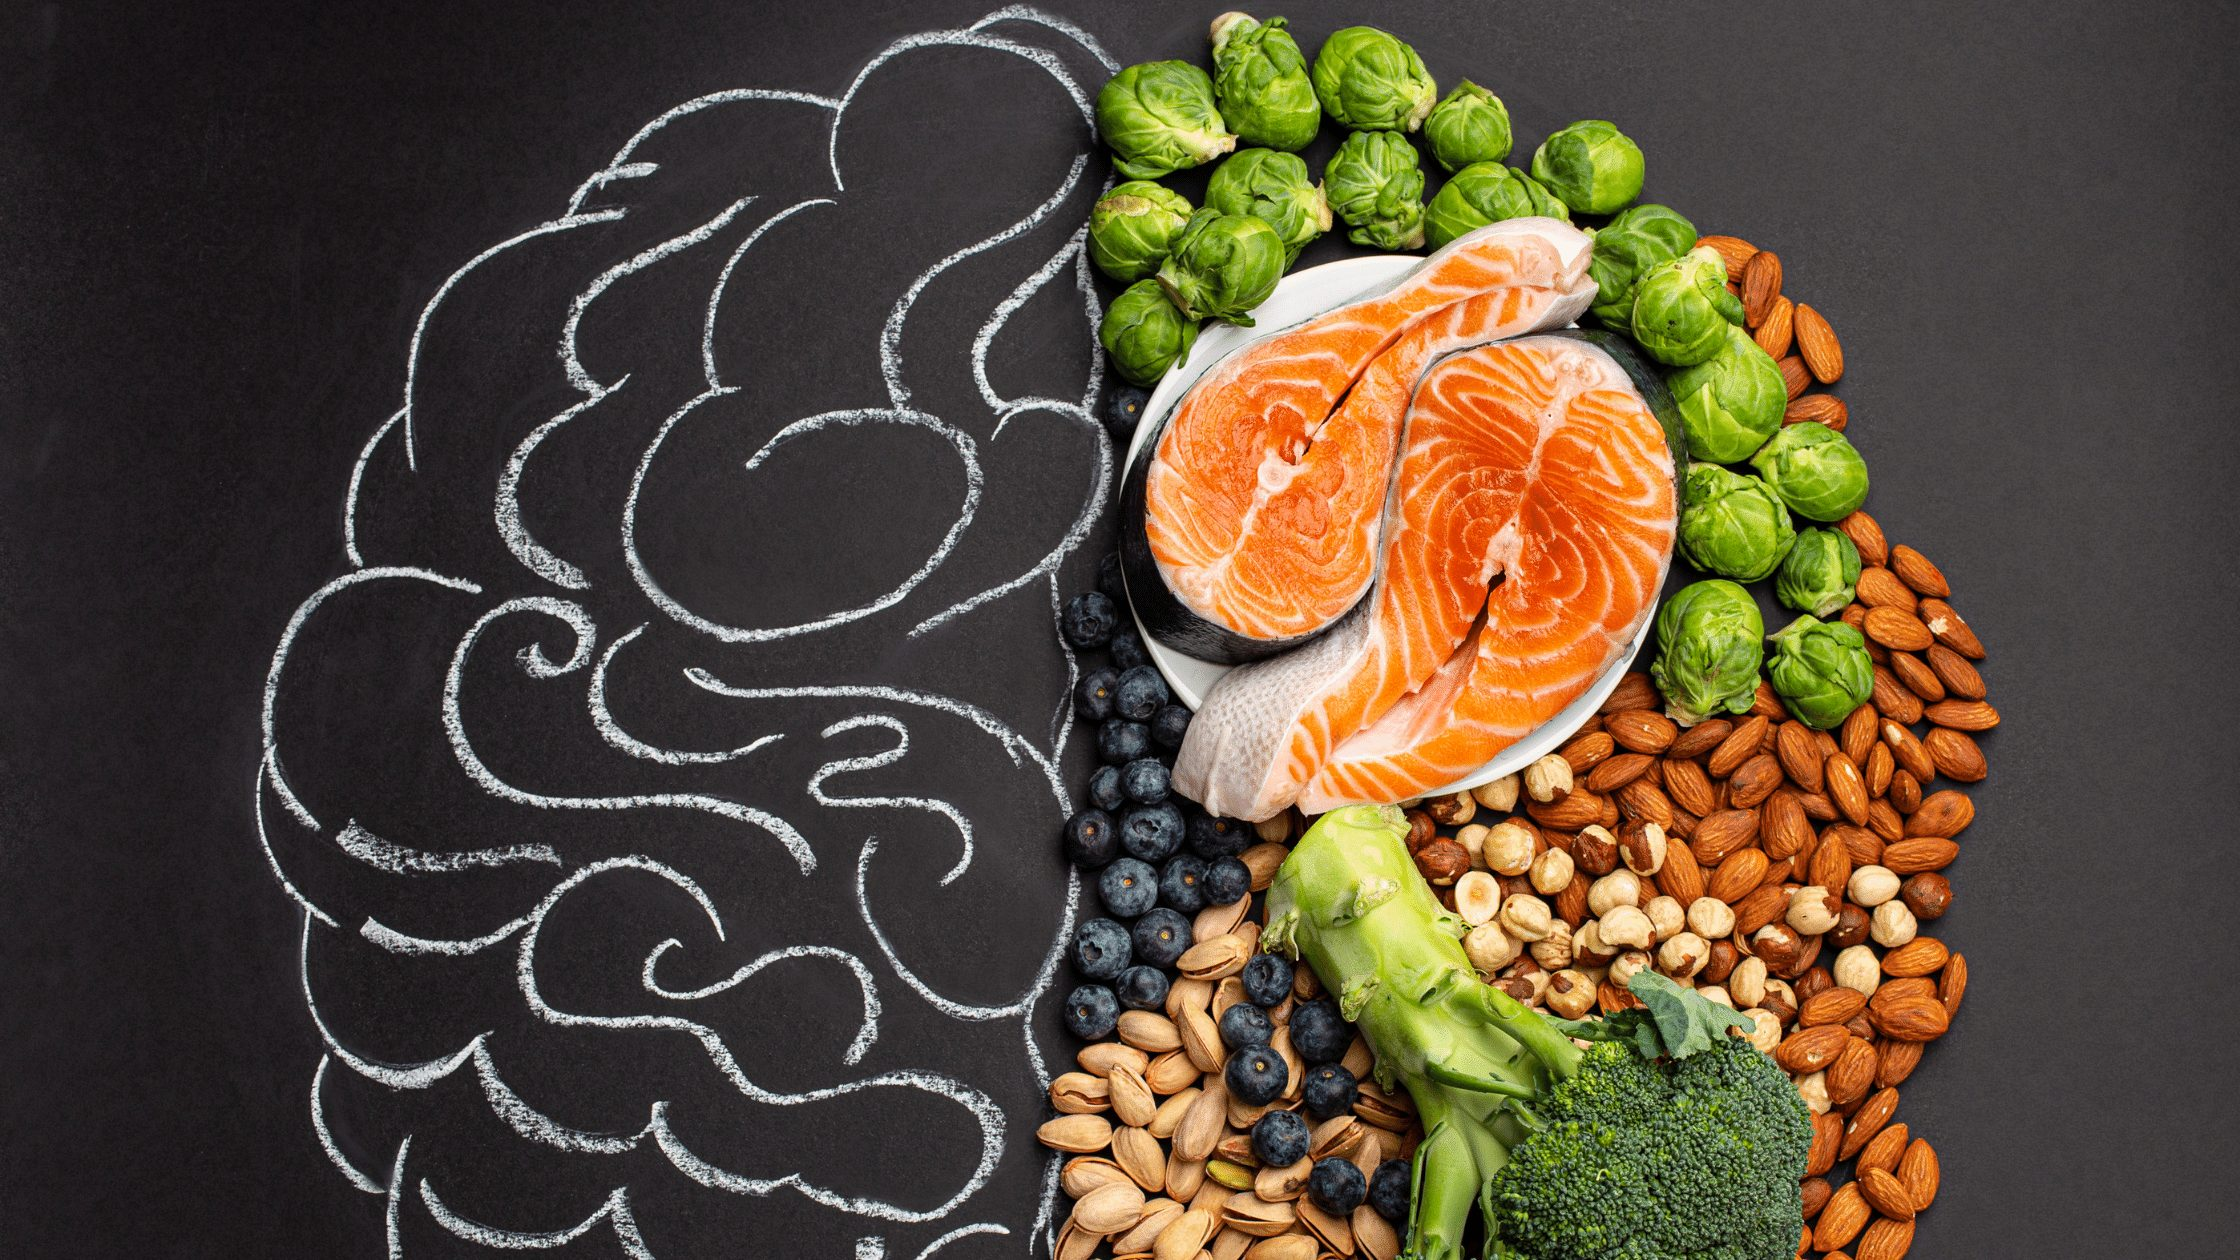 Brain design with chalk and healthy foods